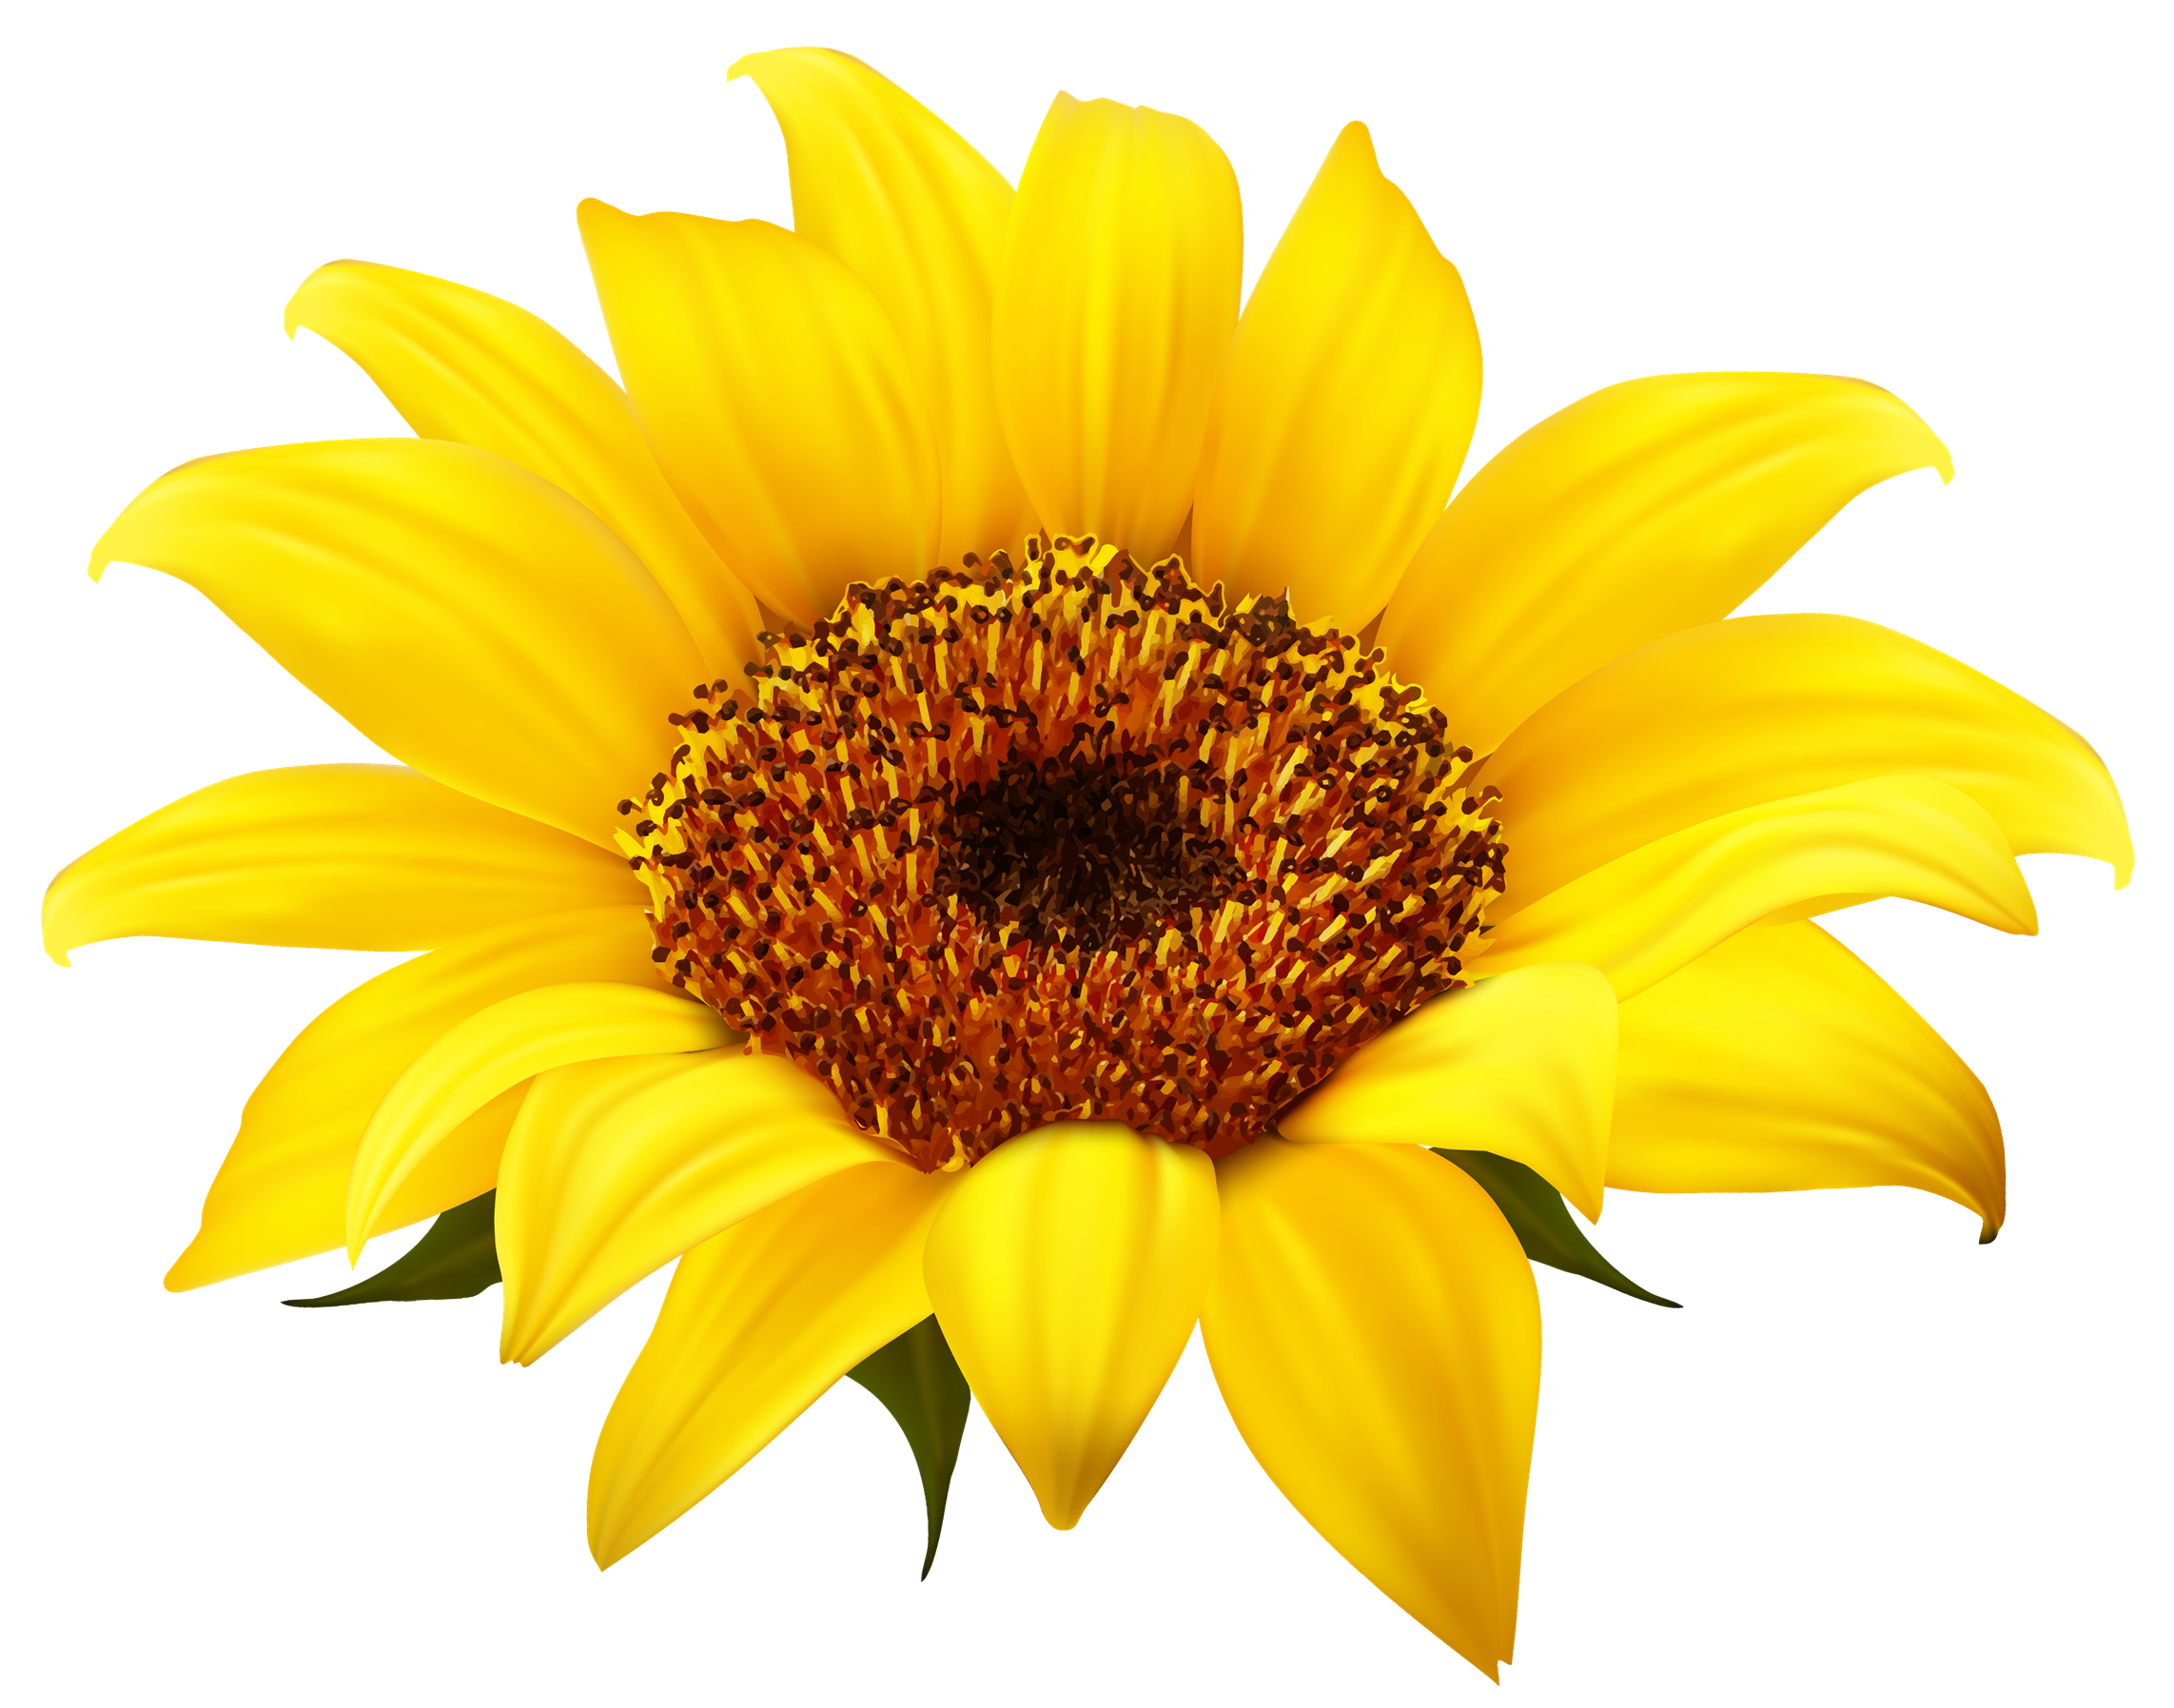 jpg freeuse library Sunflower png images free. Sunflowers clipart transparent background